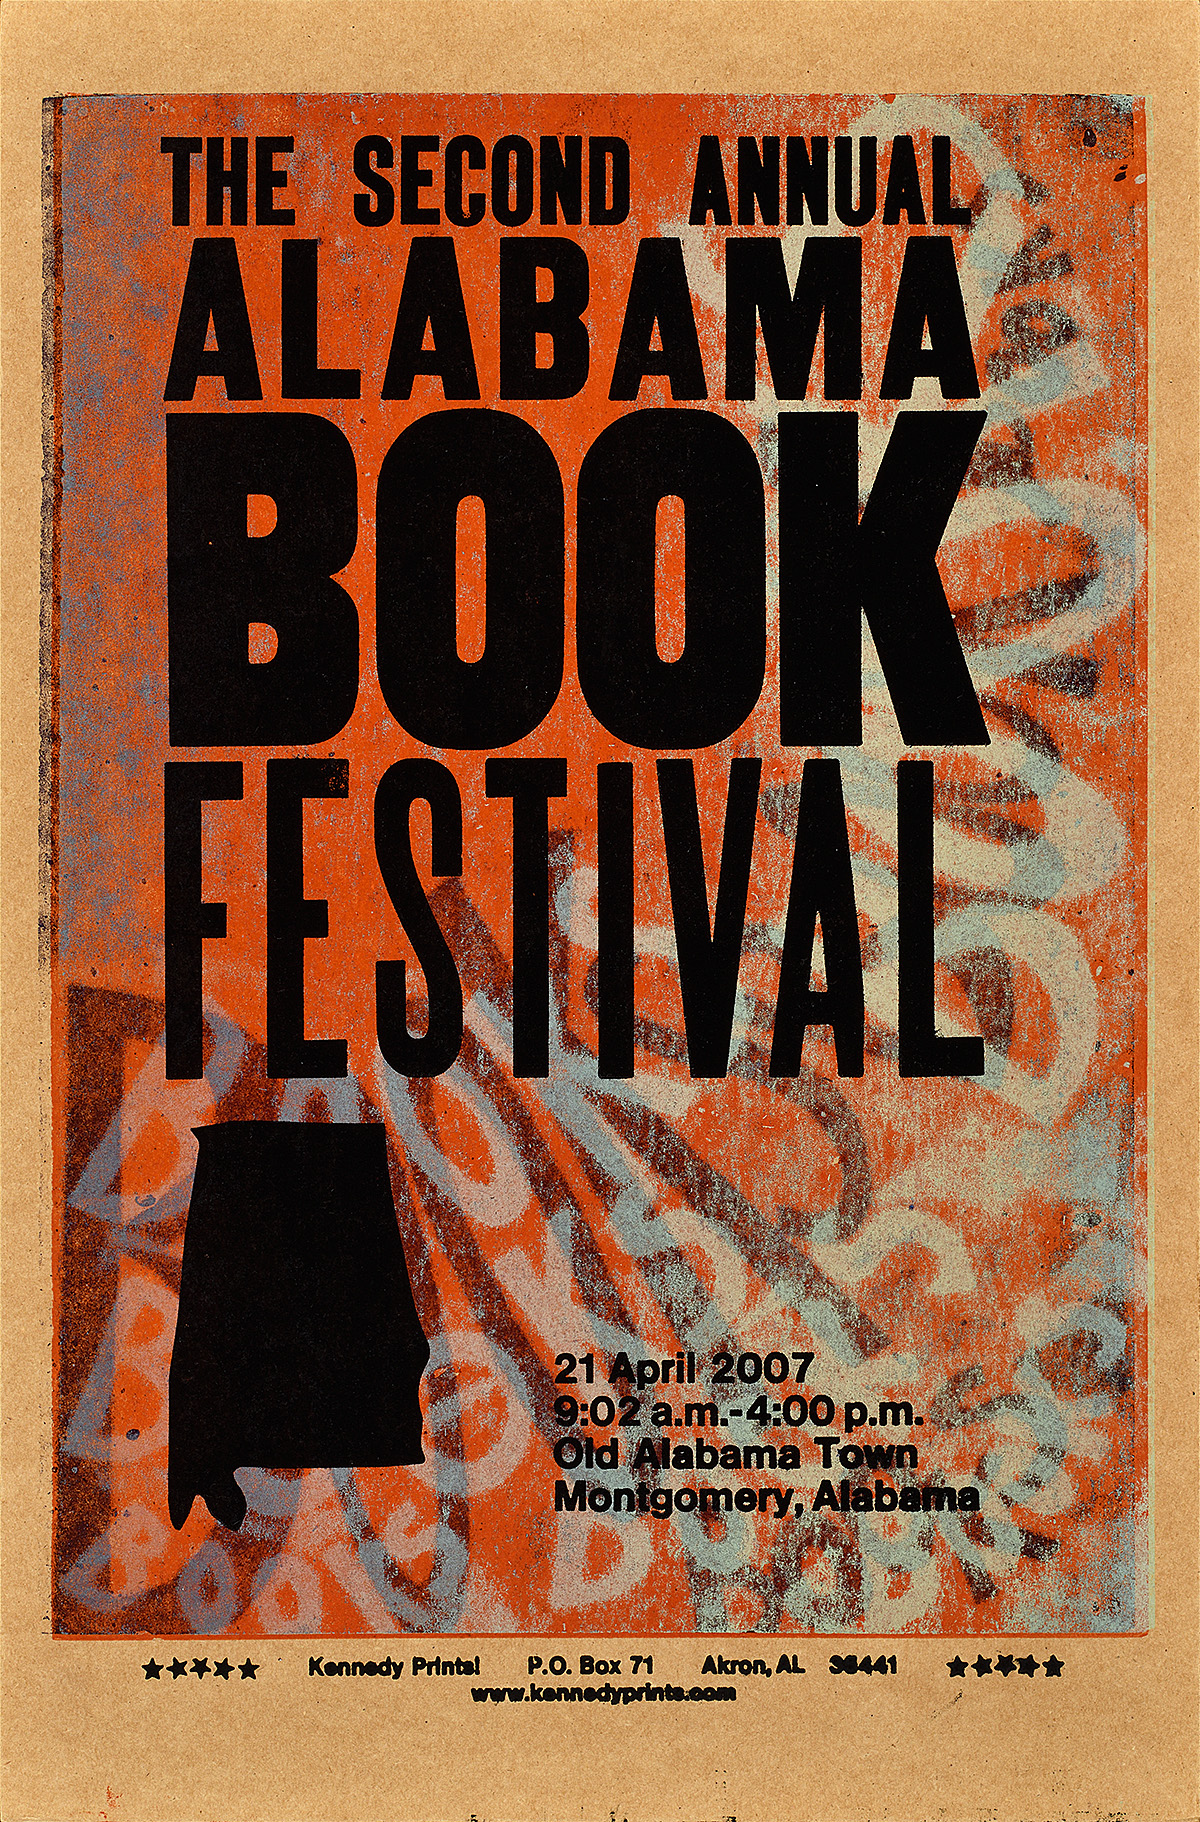 orange and red letterpress poster with an ombre background and the words books book books creating a negative impression in that color field. In black text on top of this are the words alabama book festival